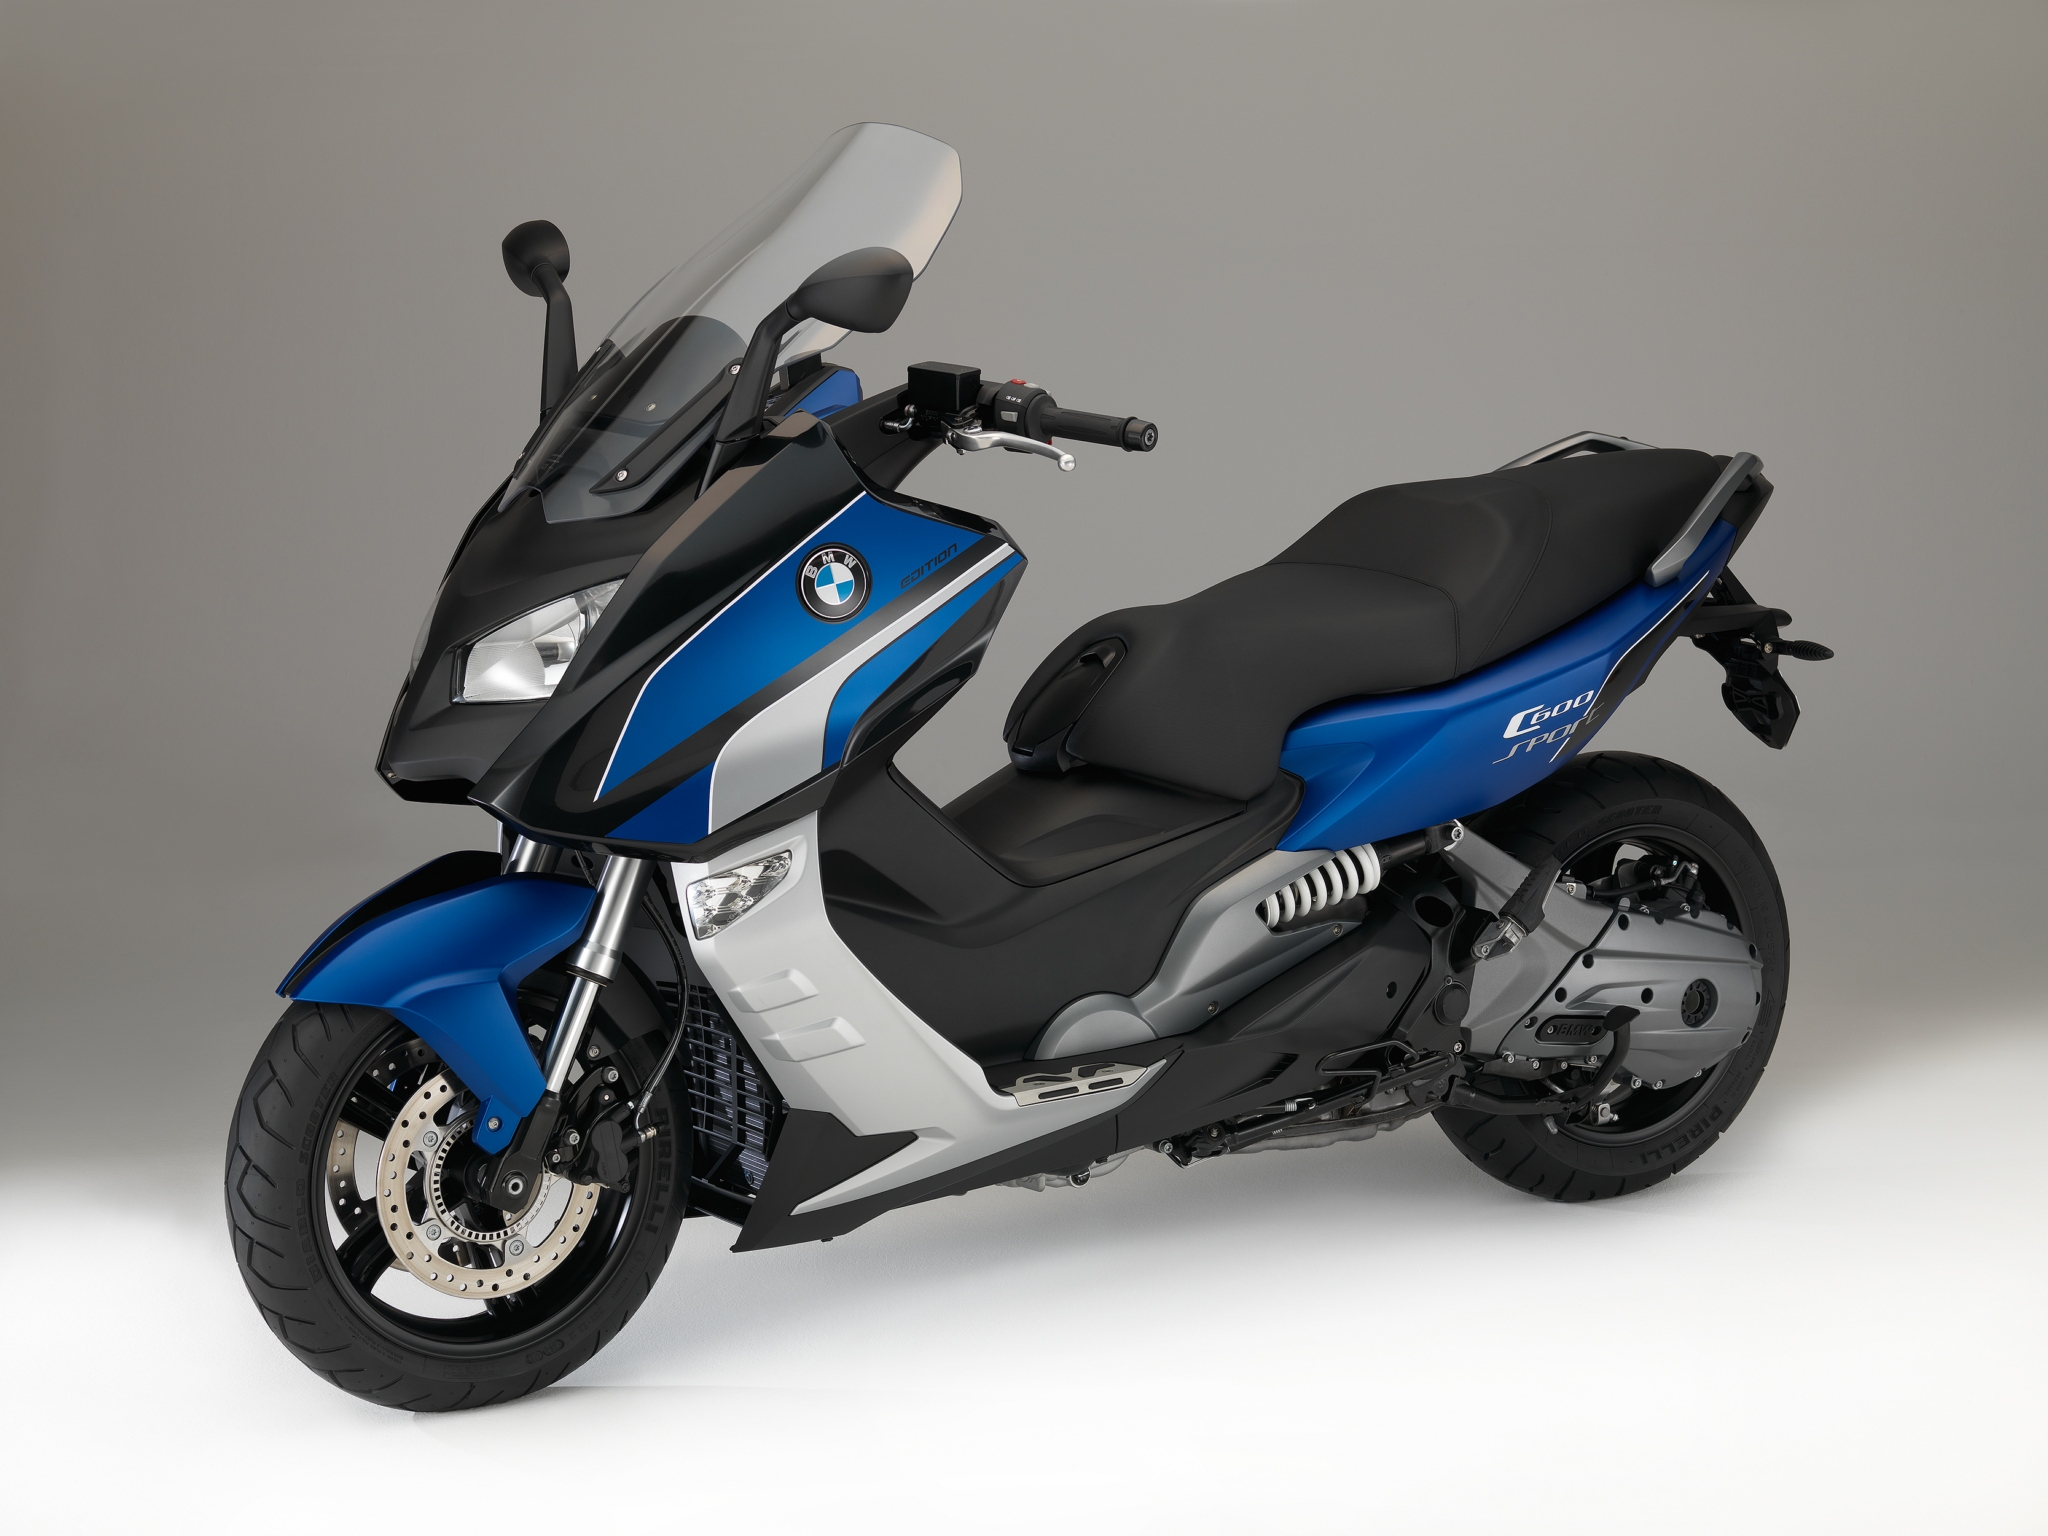 2015 bmw c600 sport and c650gt special edition maxi scooters available